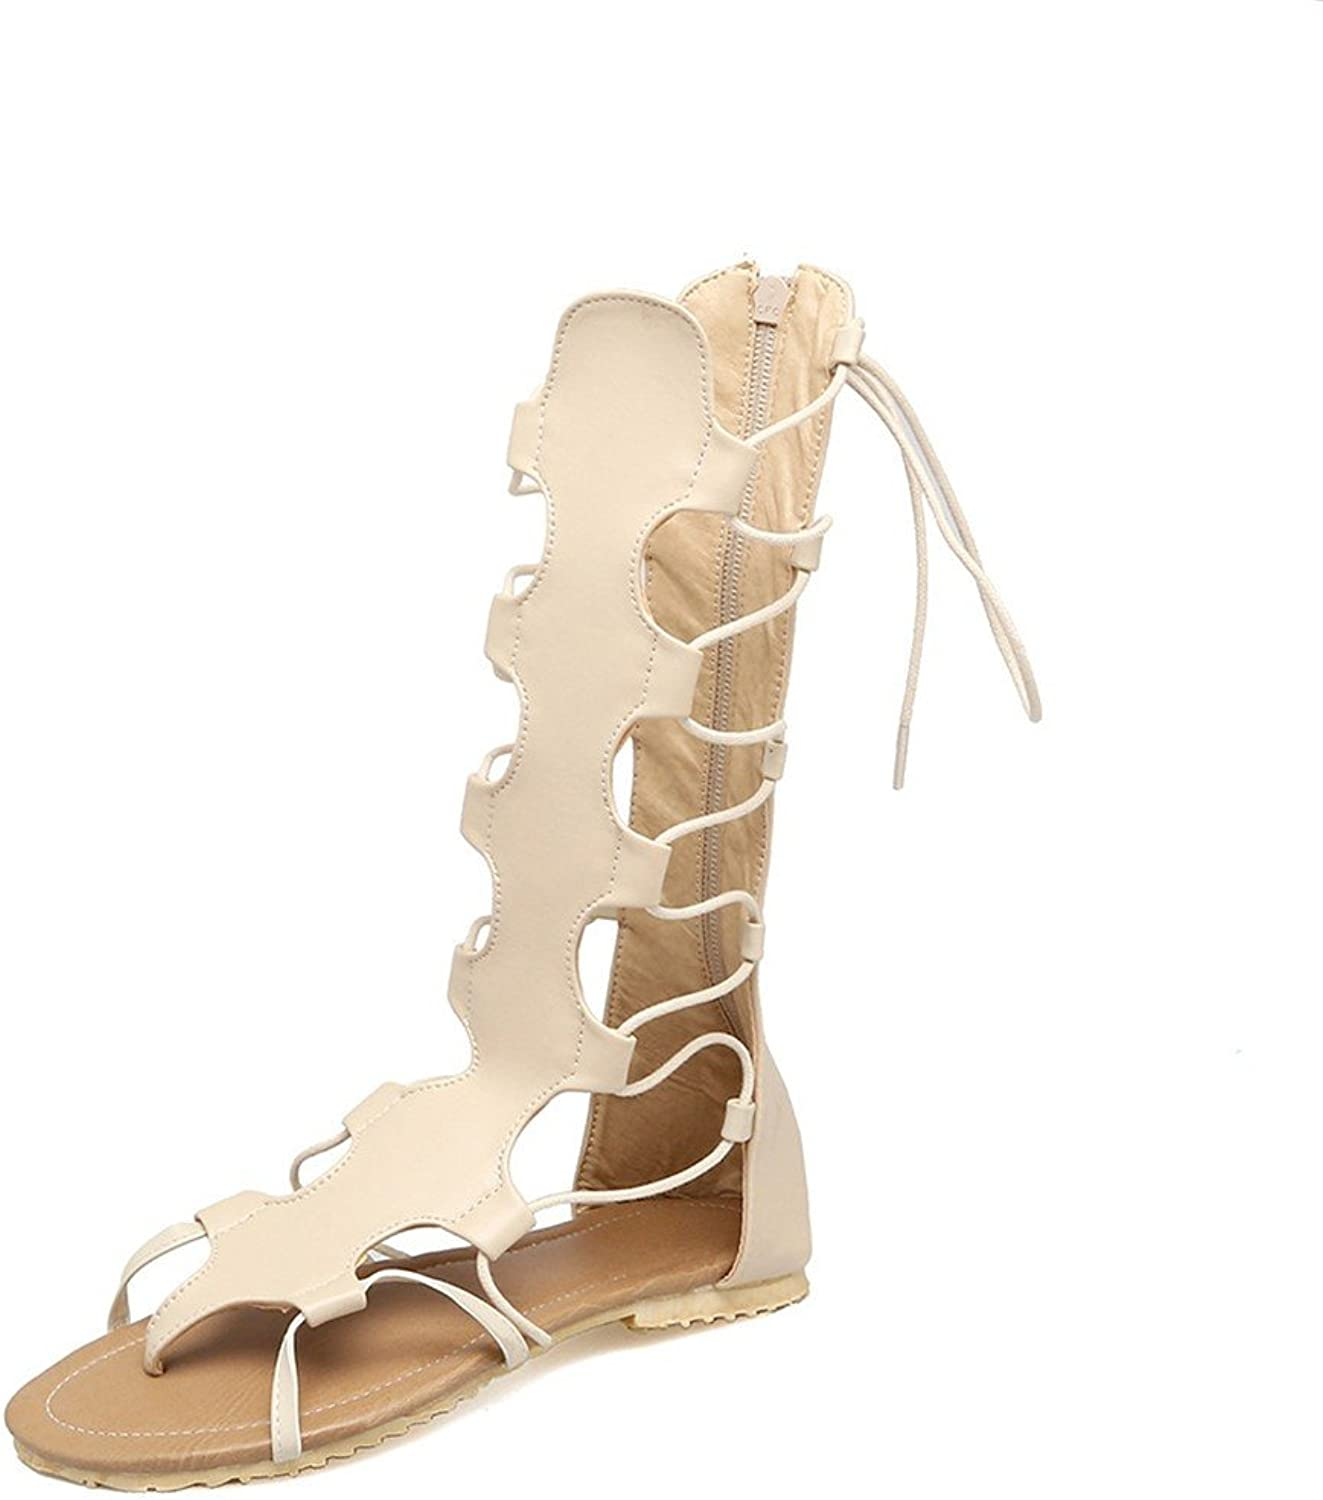 YU&Xin-The Code in The Summer Women shoes Flat with The Barrel Cross Strap Sandals